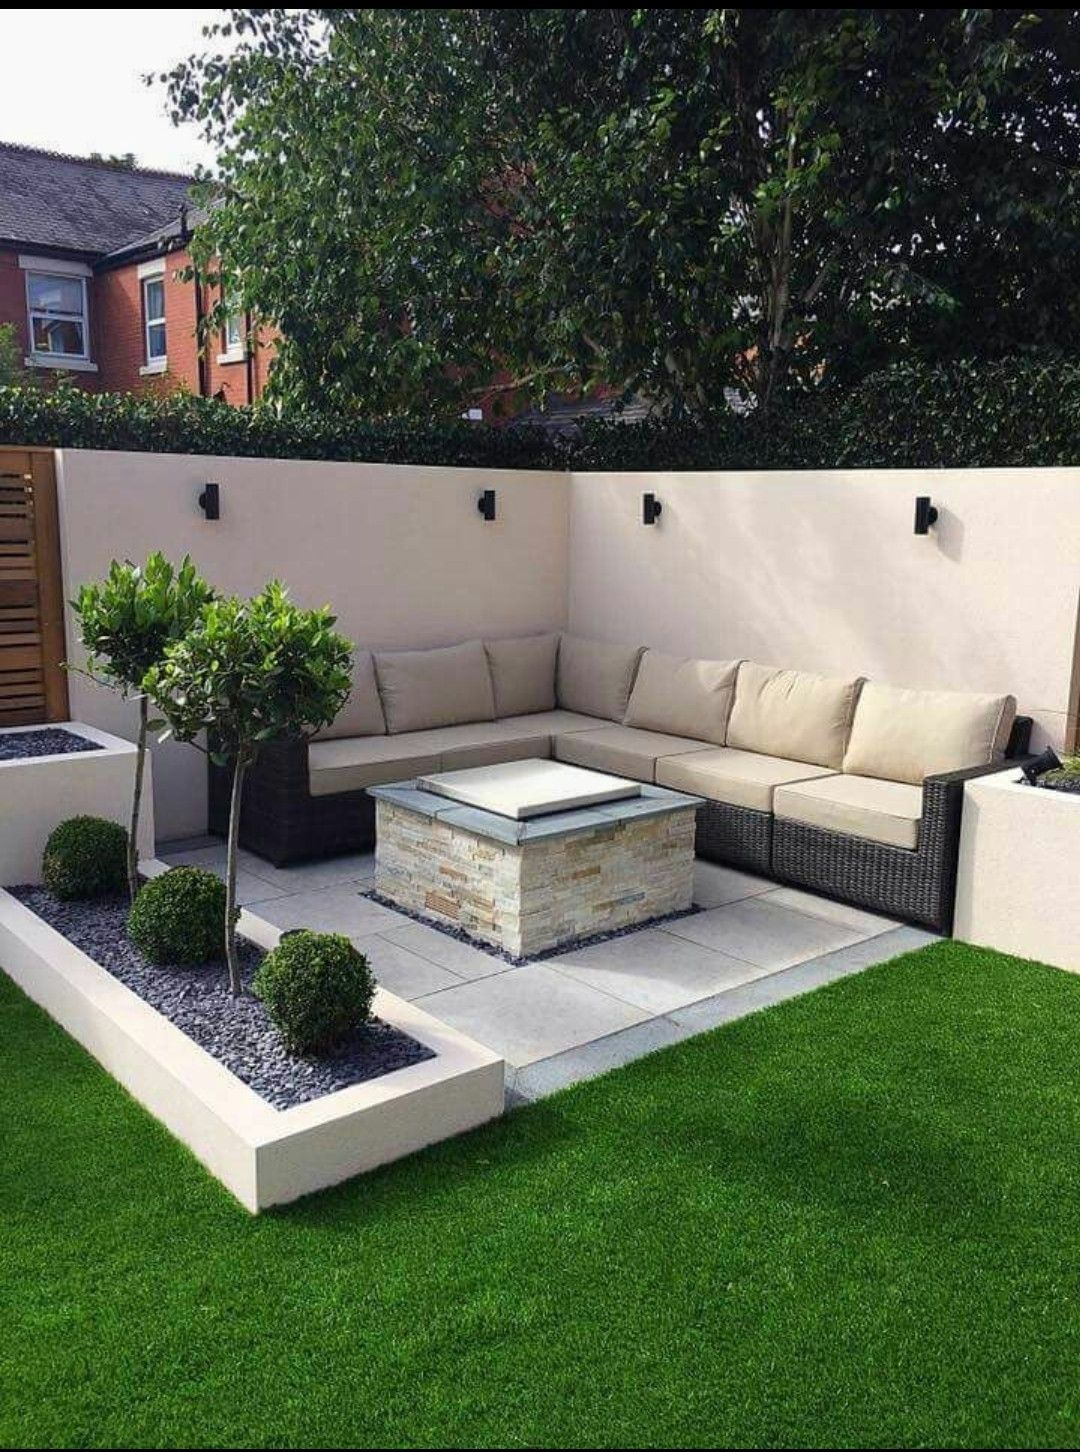 Back Garden Patio Ideas Imagen Patio Exterior Diseño De Porches Jardines Piscinas In